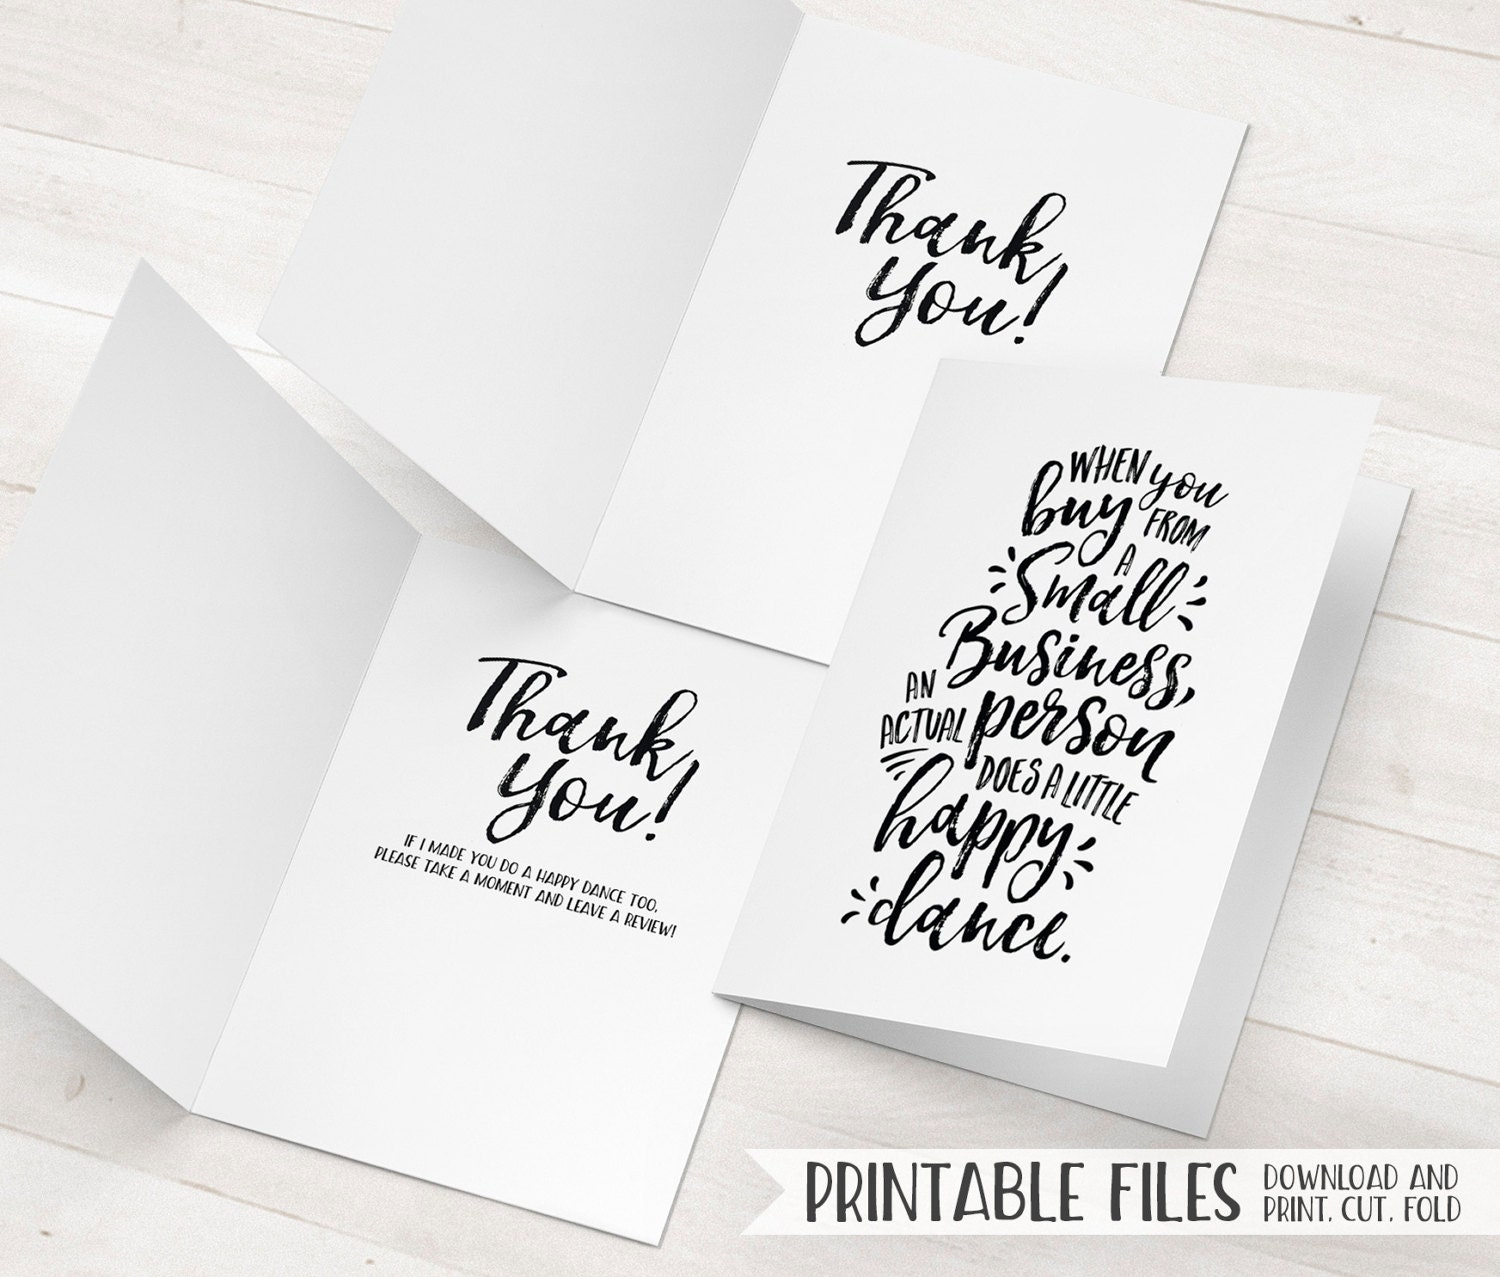 thank you boss small business thank you cards printable package inserts happy dance printable thank you cards girl boss card shop small marketing cards